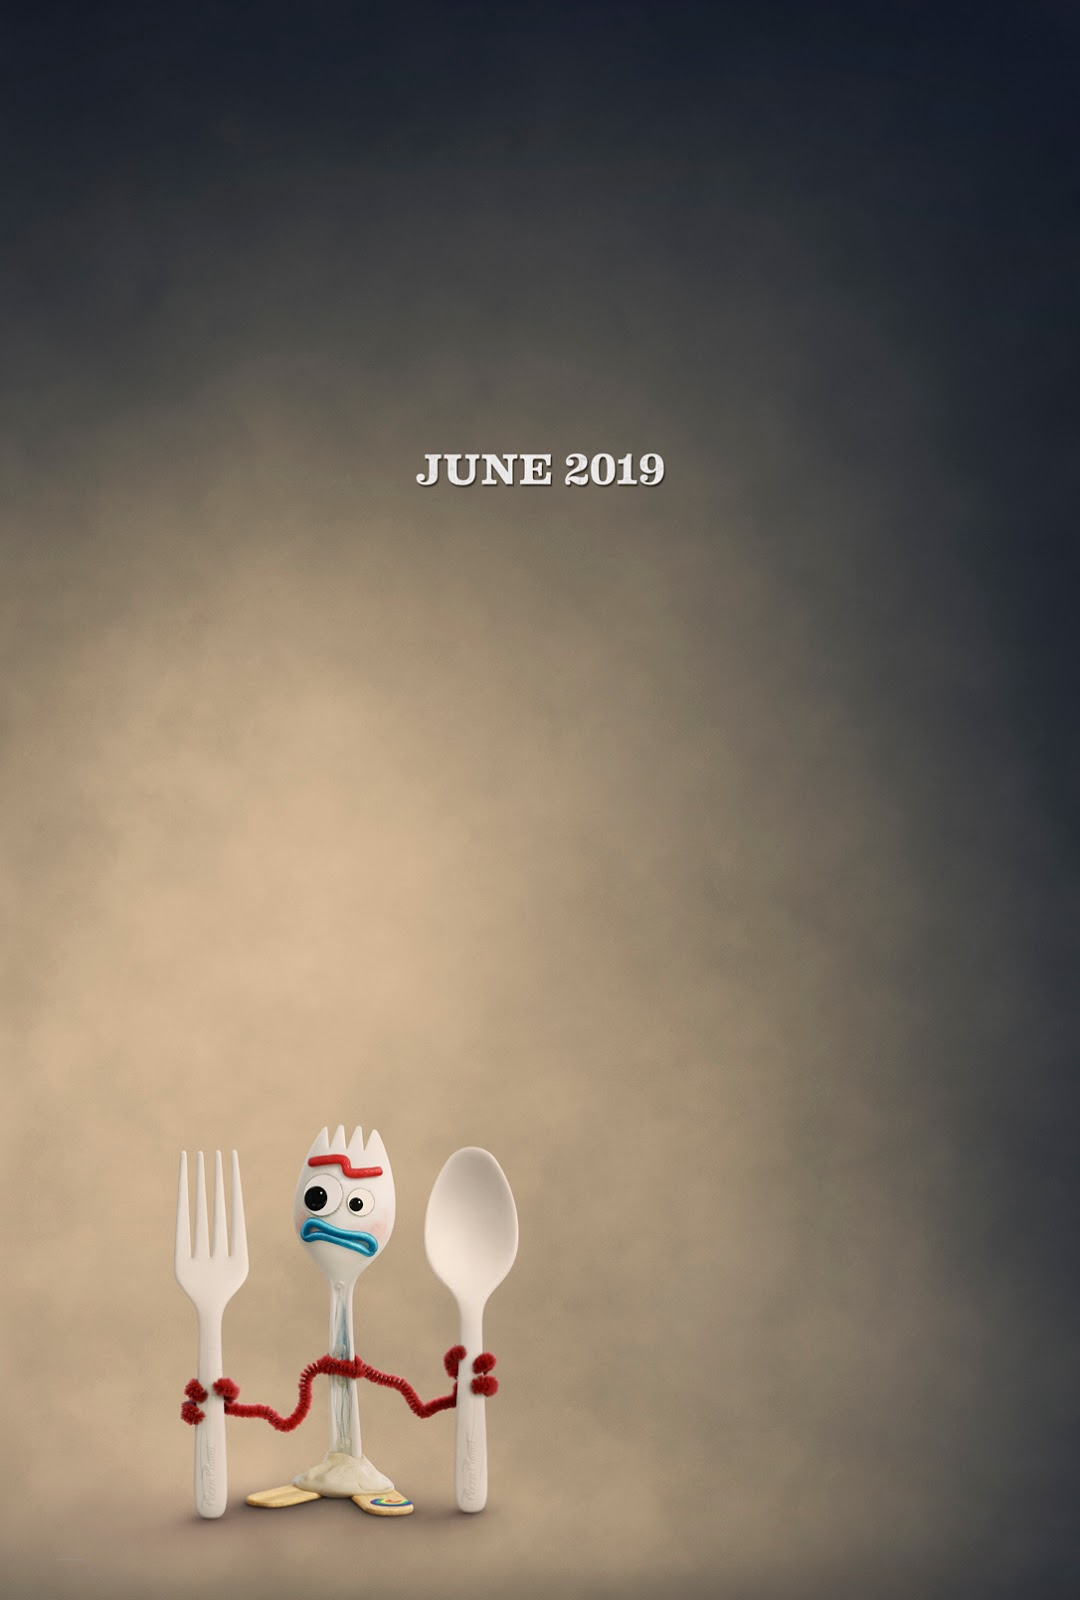 Meet New Characters Ducky And Bunny From Toy Story 4